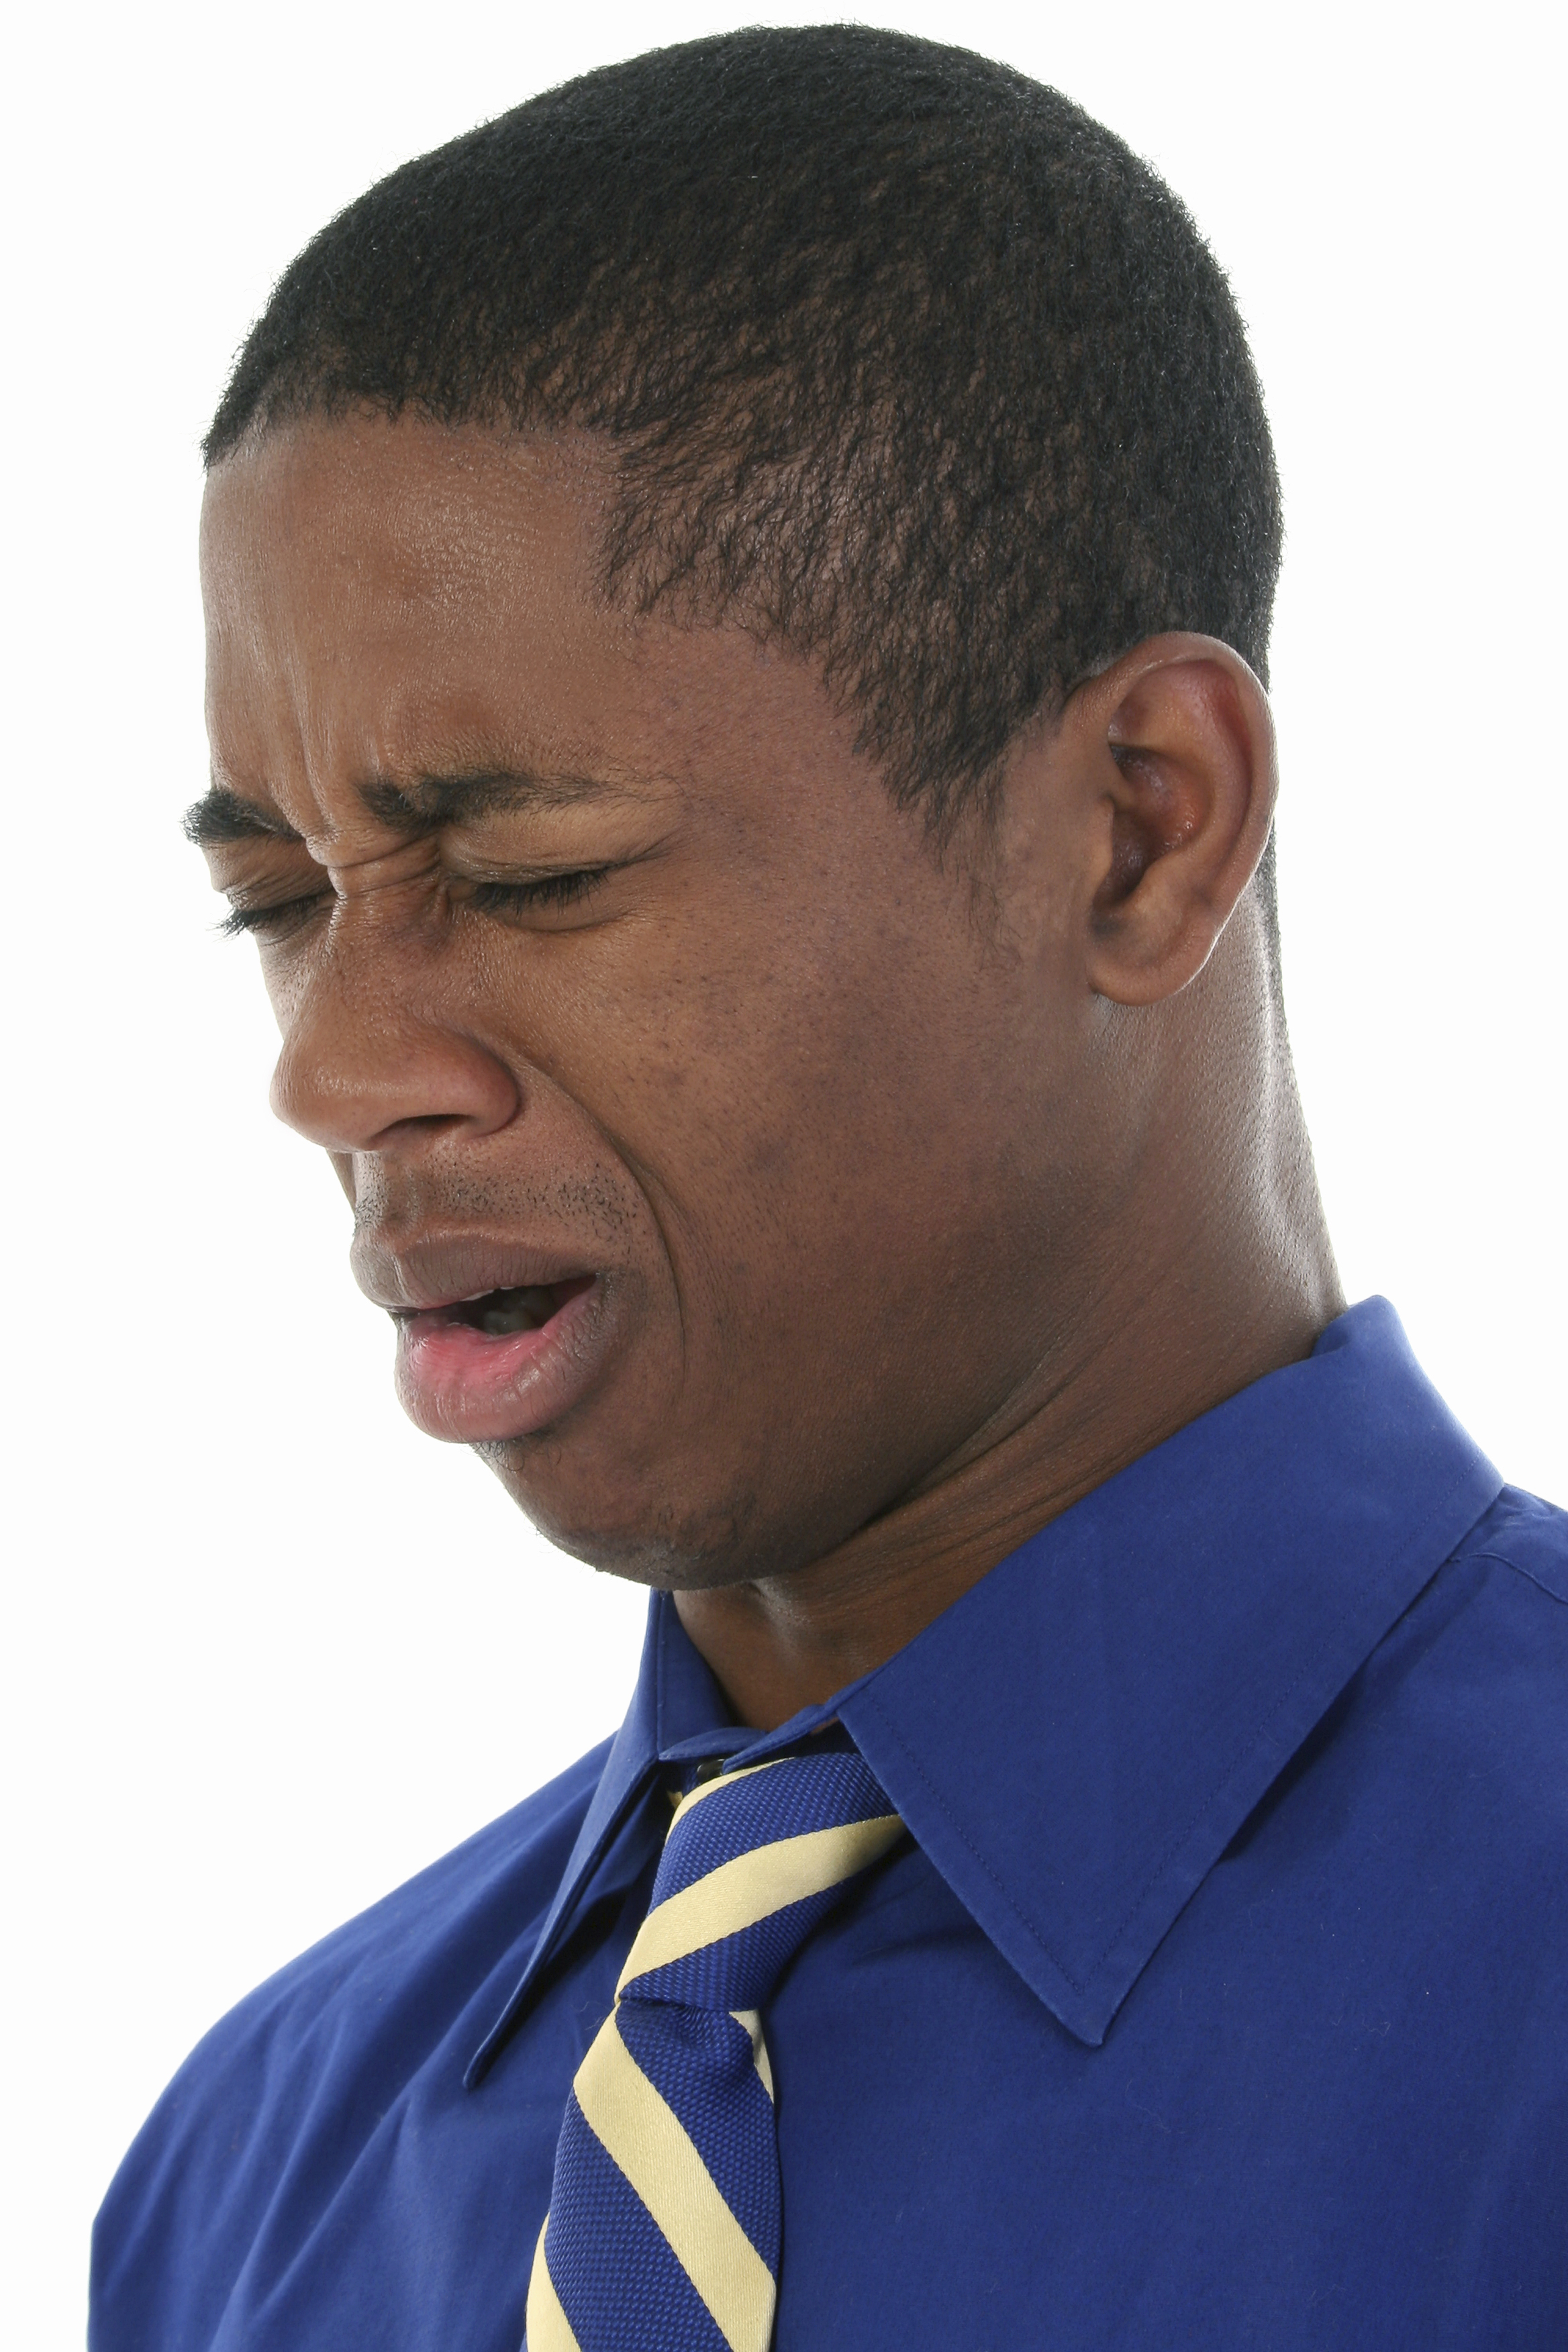 Close up headshot of African American man cringing from bad smell.  Wearing blue shirt and blue and yellow tie.